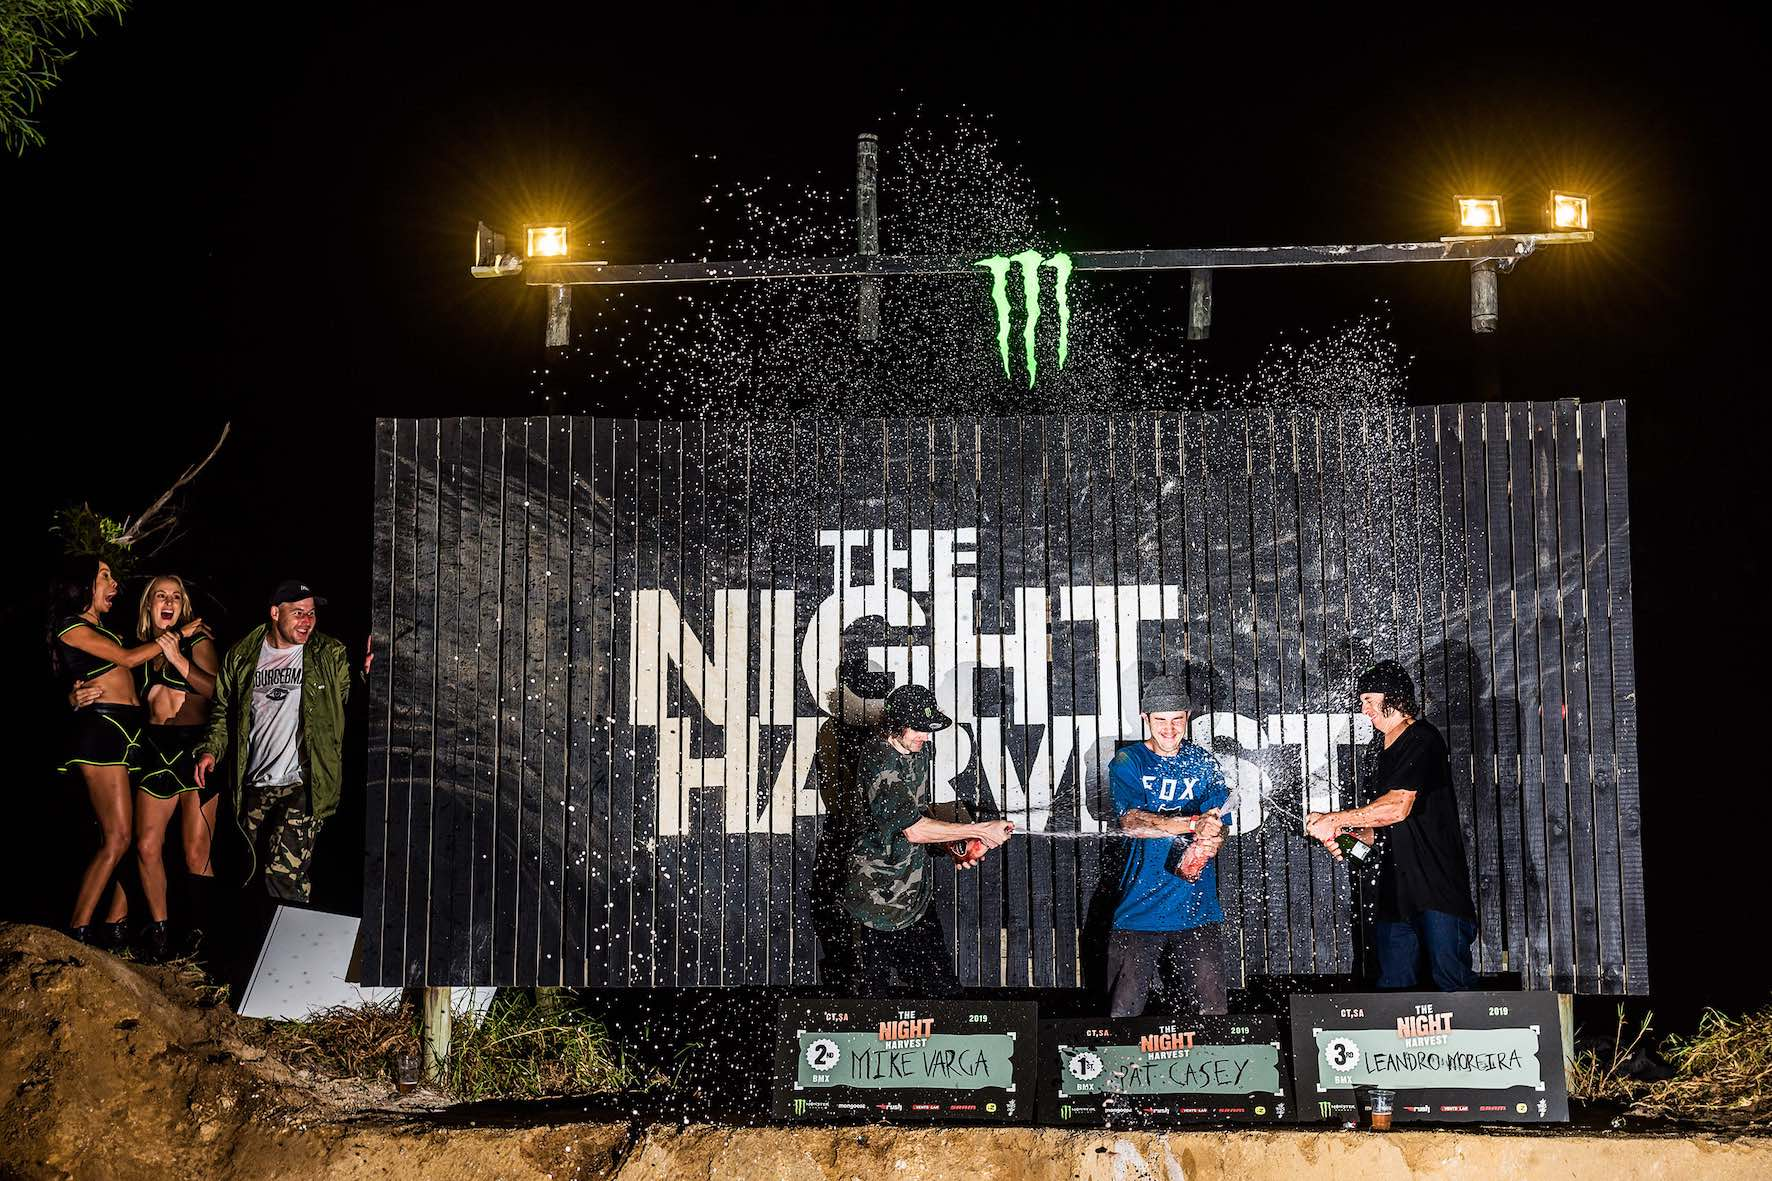 The Night Harvest 2019 BMX podium